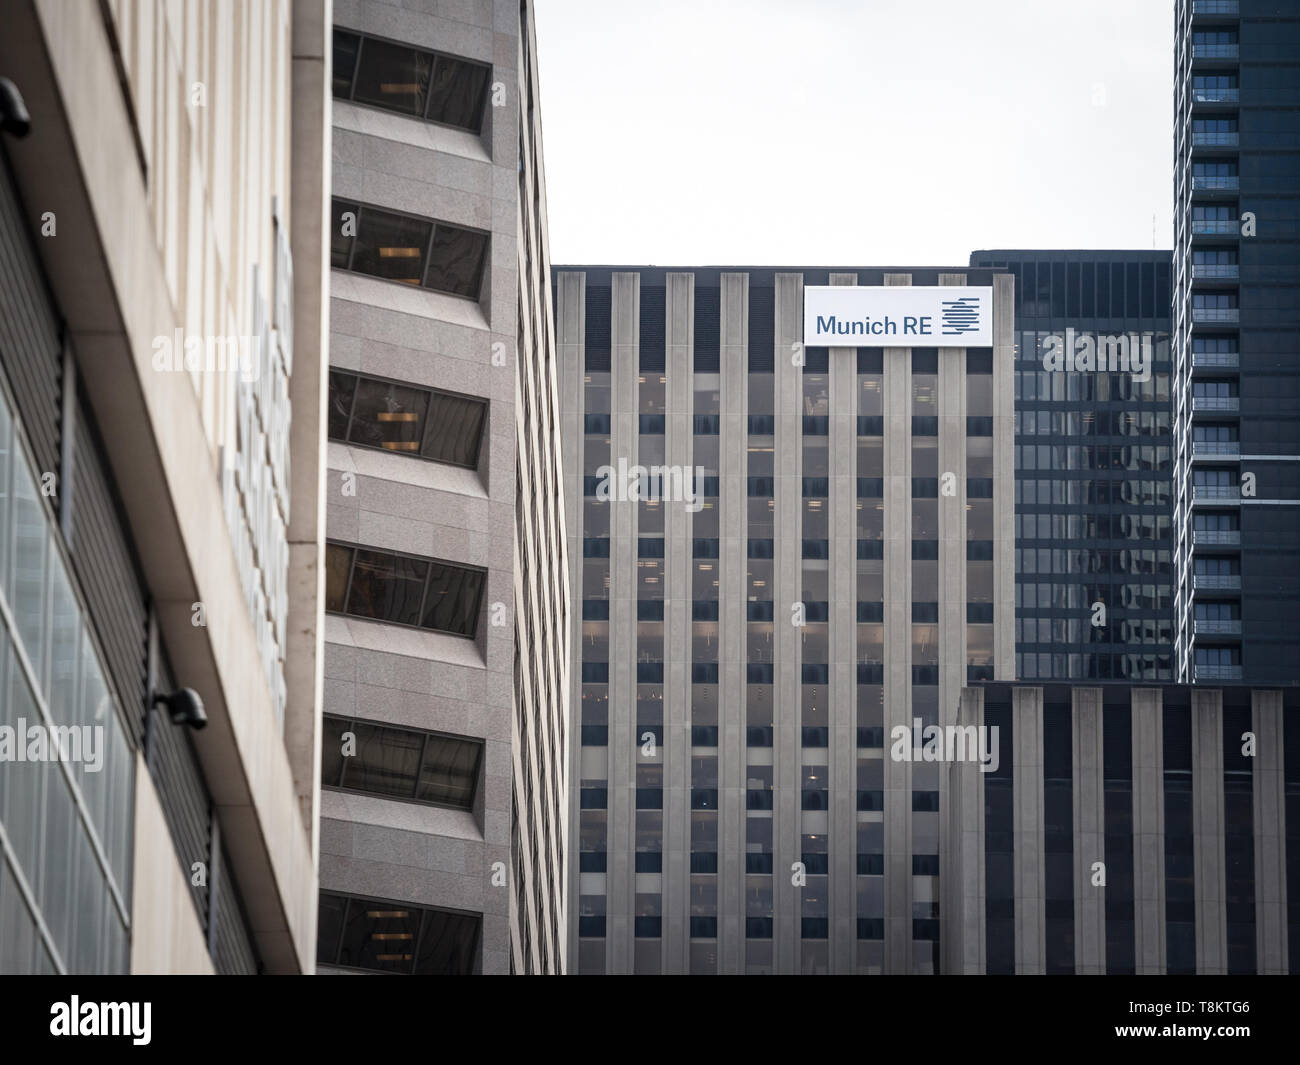 TORONTO, CANADA - NOVEMBER 13, 2018: Munich RE logo, on of their headquarters for Canada in Toronto, Ontario. Munich RE, or Munchener Ruck, is a Germa - Stock Image